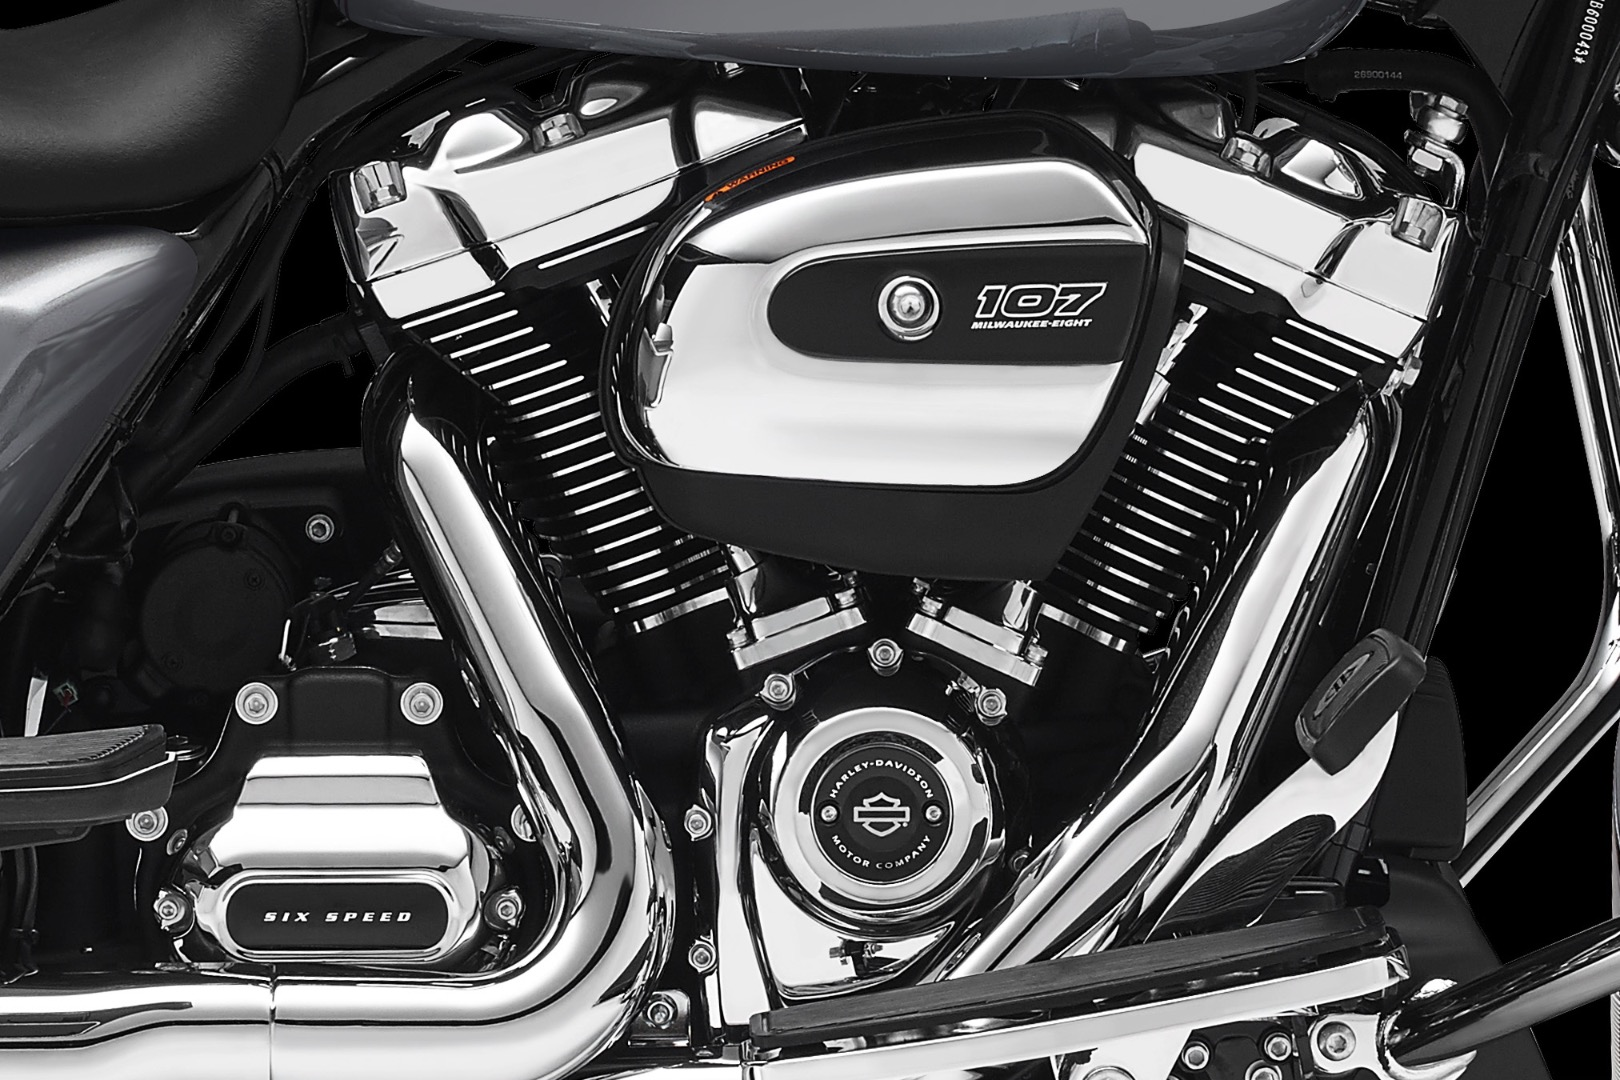 2017 Harley-Davidson Milwaukee-Eight Engines | 11 Fast Facts on